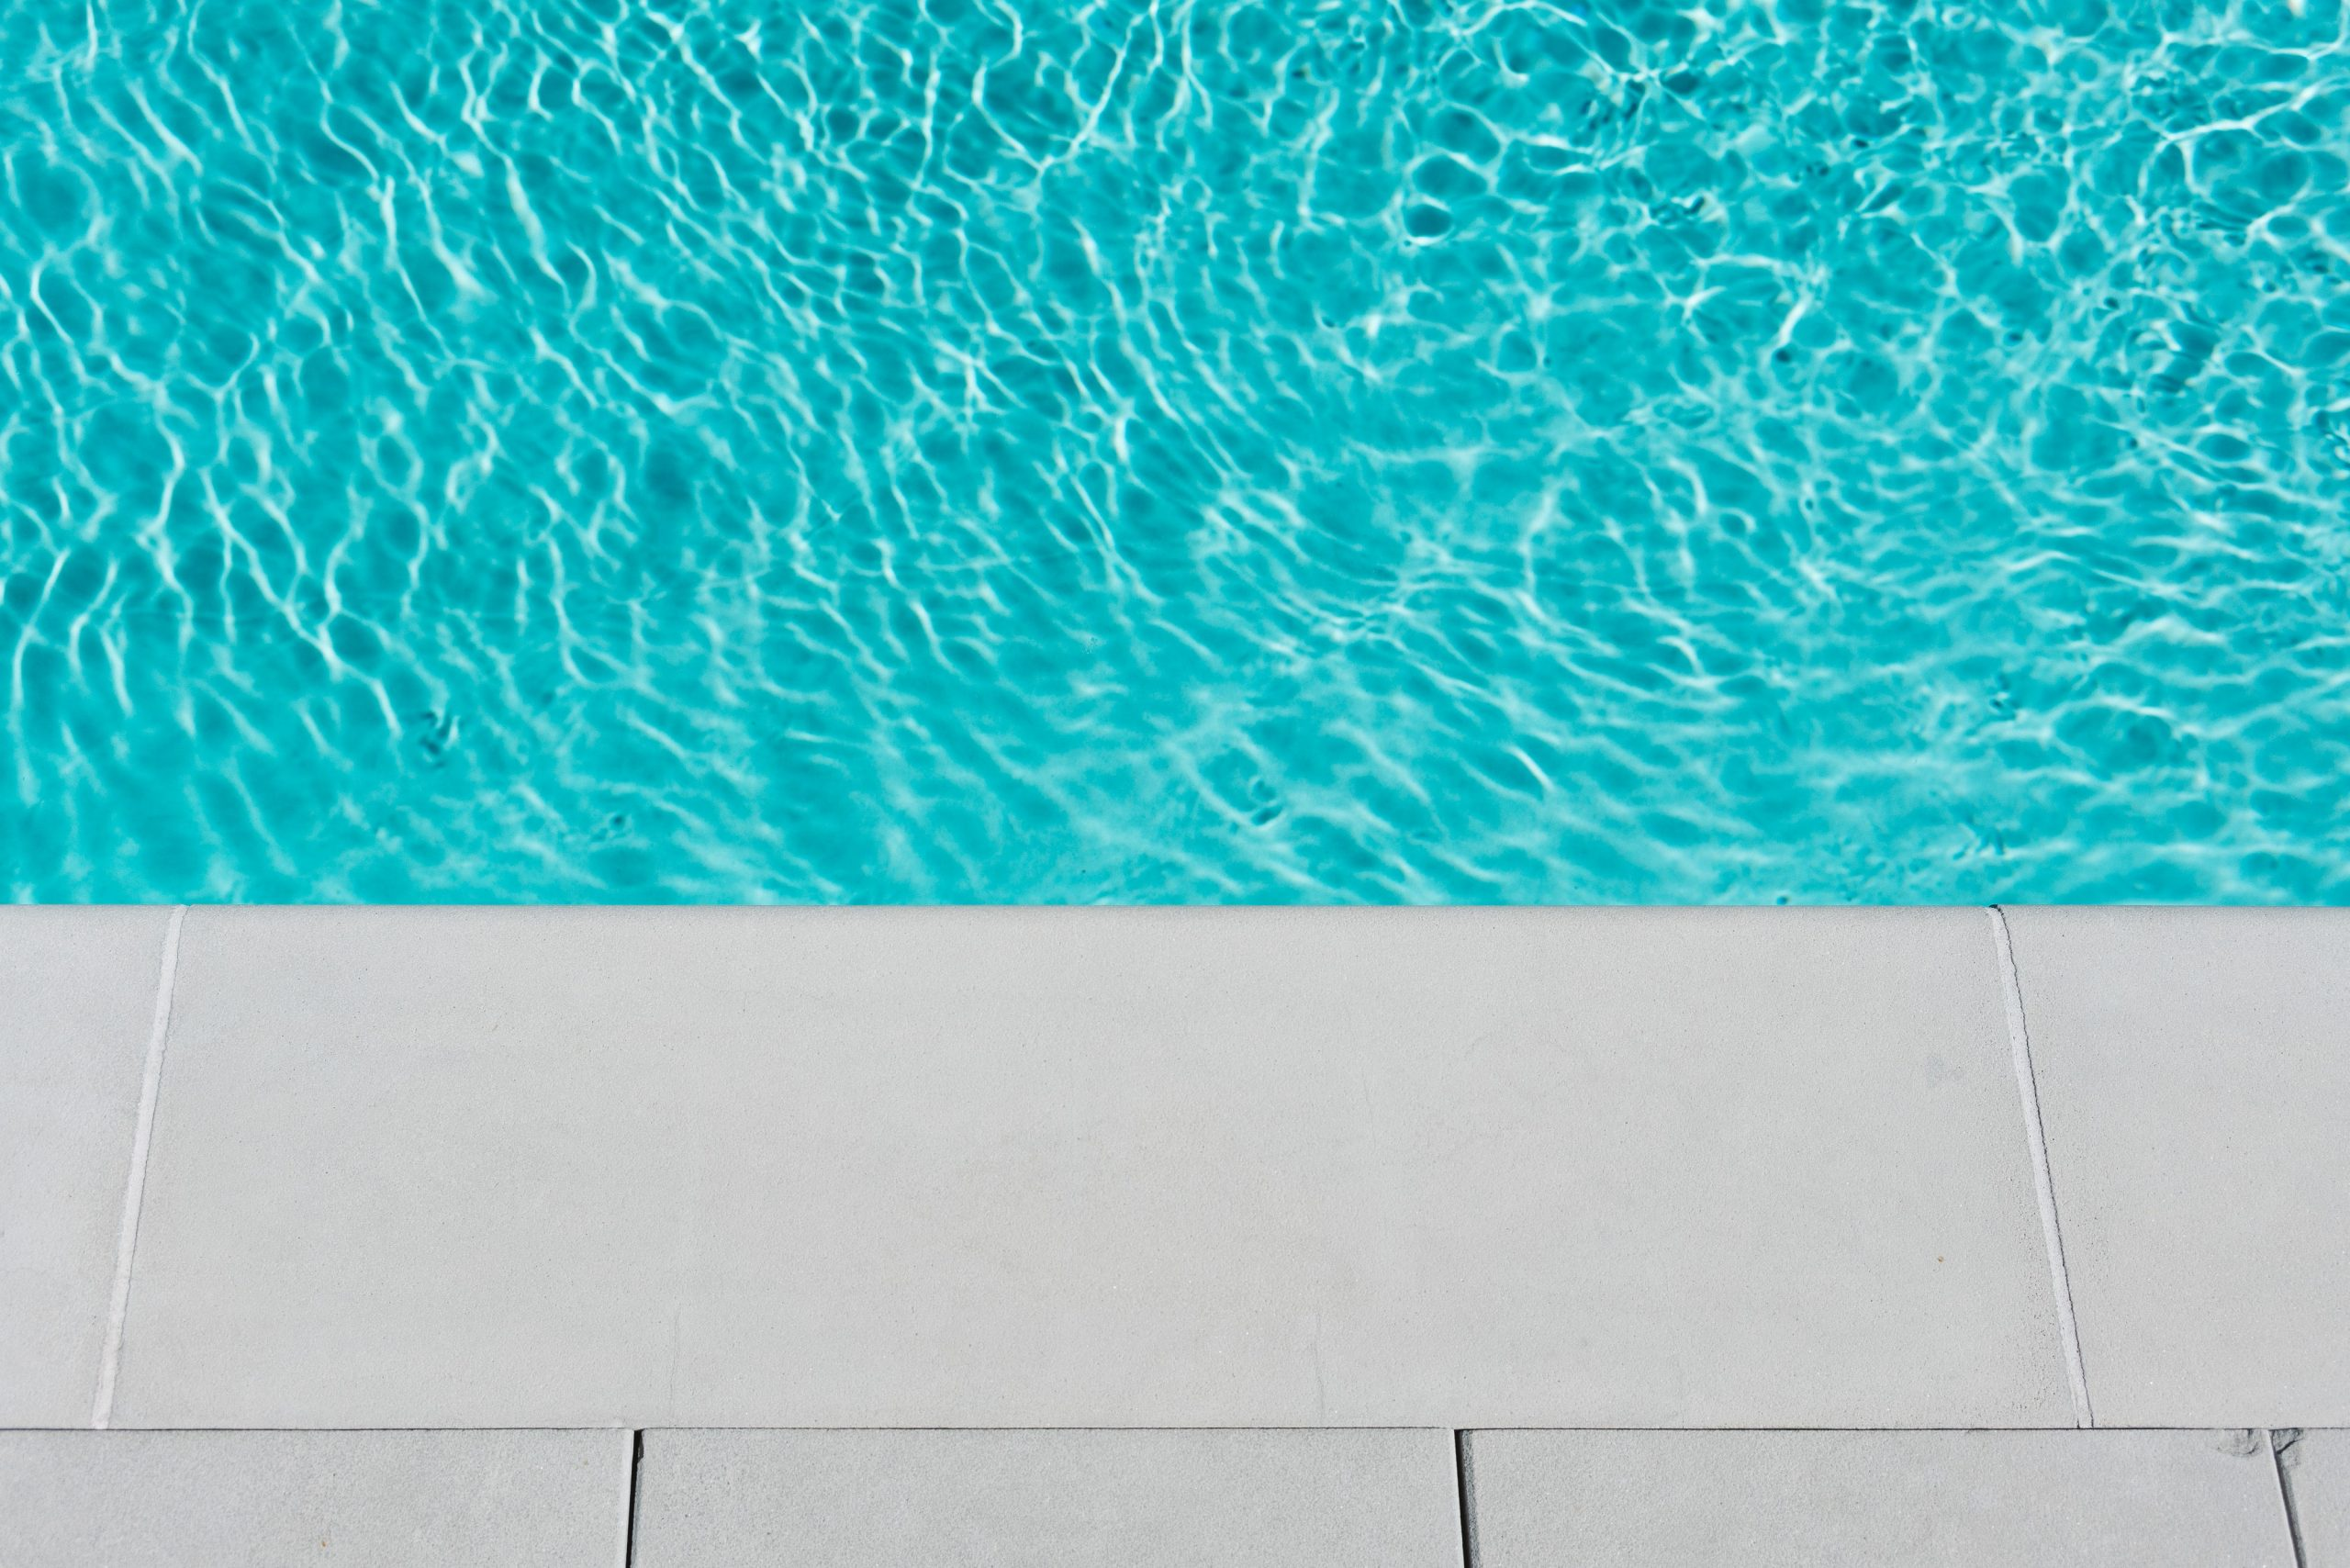 Here's how to clean a pool. How Often Should I Clean Cartridge Filters Opulent Pools